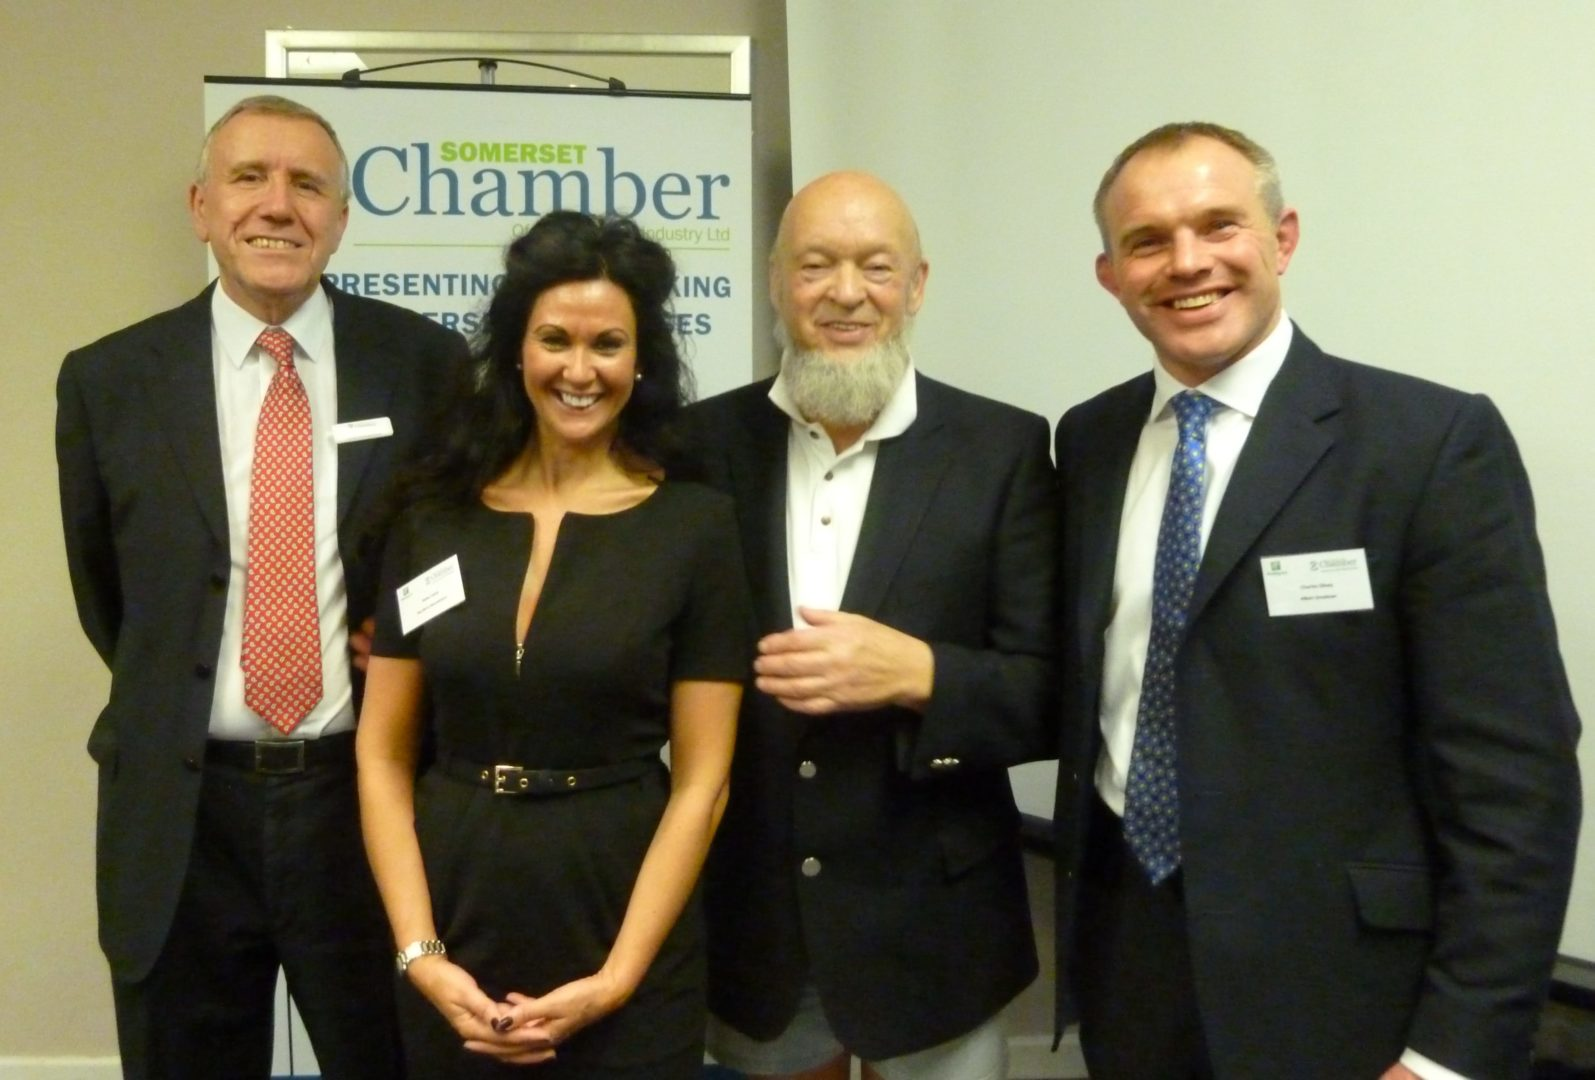 Pictured, left to right: Somerset Chamber Board representatives Graham Knight (Chairman), Helen Lacey (Director), Michael Eavis CBE (President), Charles Olney (Director)